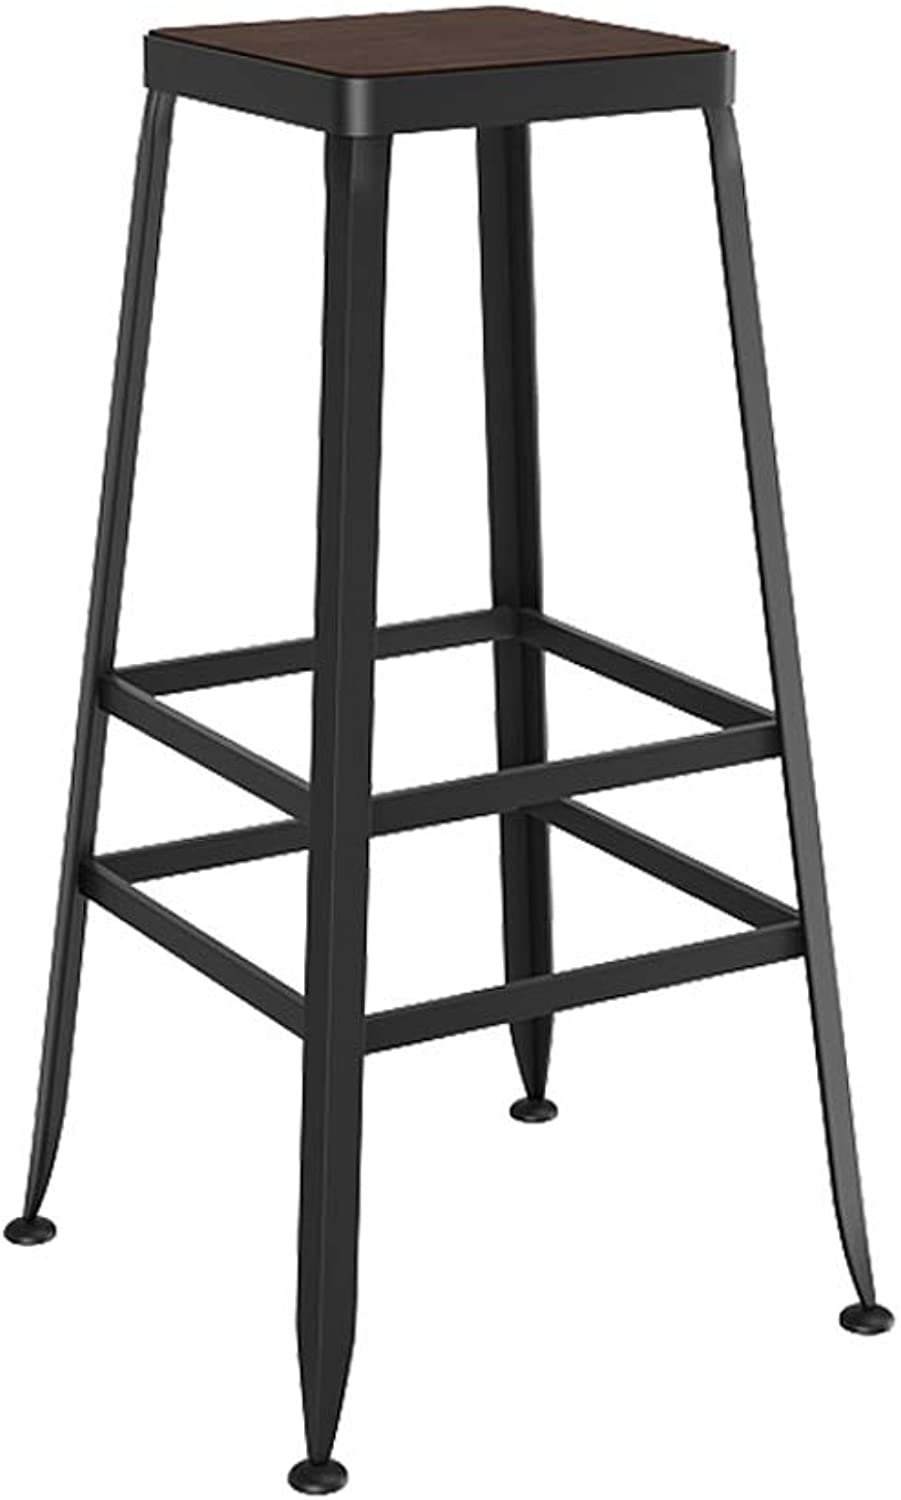 Hai Yan Boutique European Bar Stools Solid Wood Wrought Iron Bar Stool Bar Stool Chair High Stool Bar Stool (color   K)